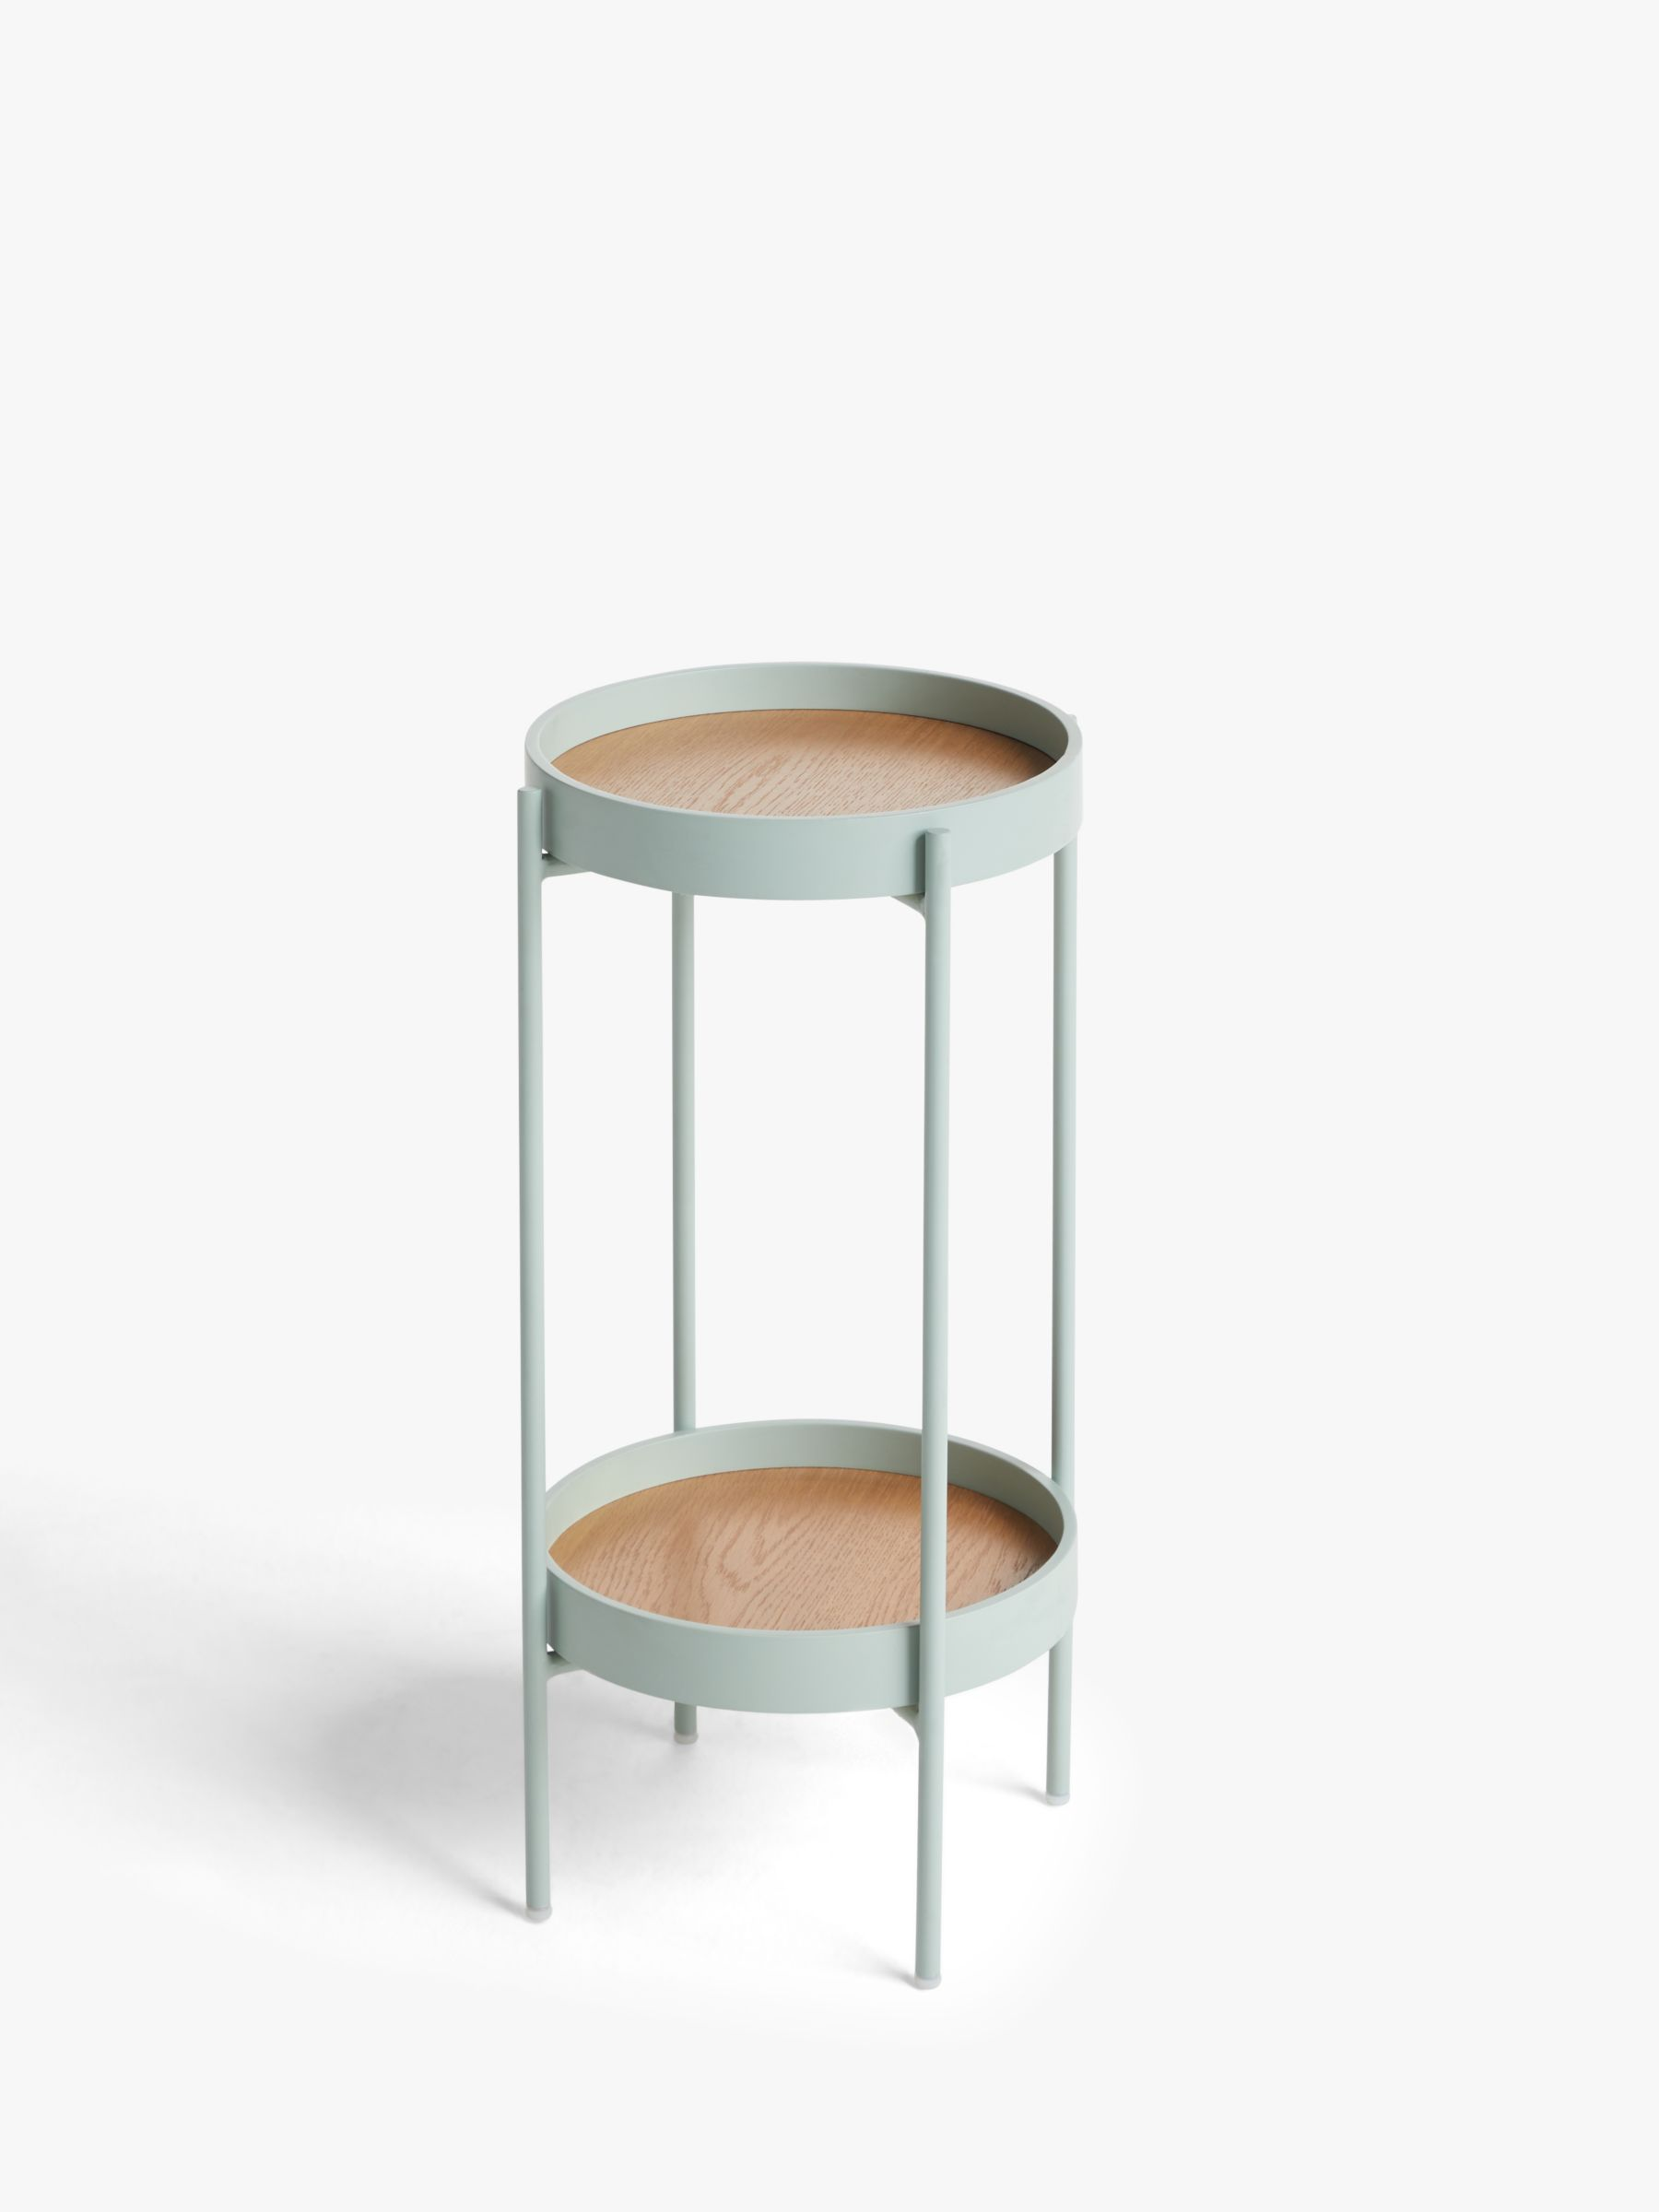 ANYDAY John Lewis & Partners Jax Small Side Table